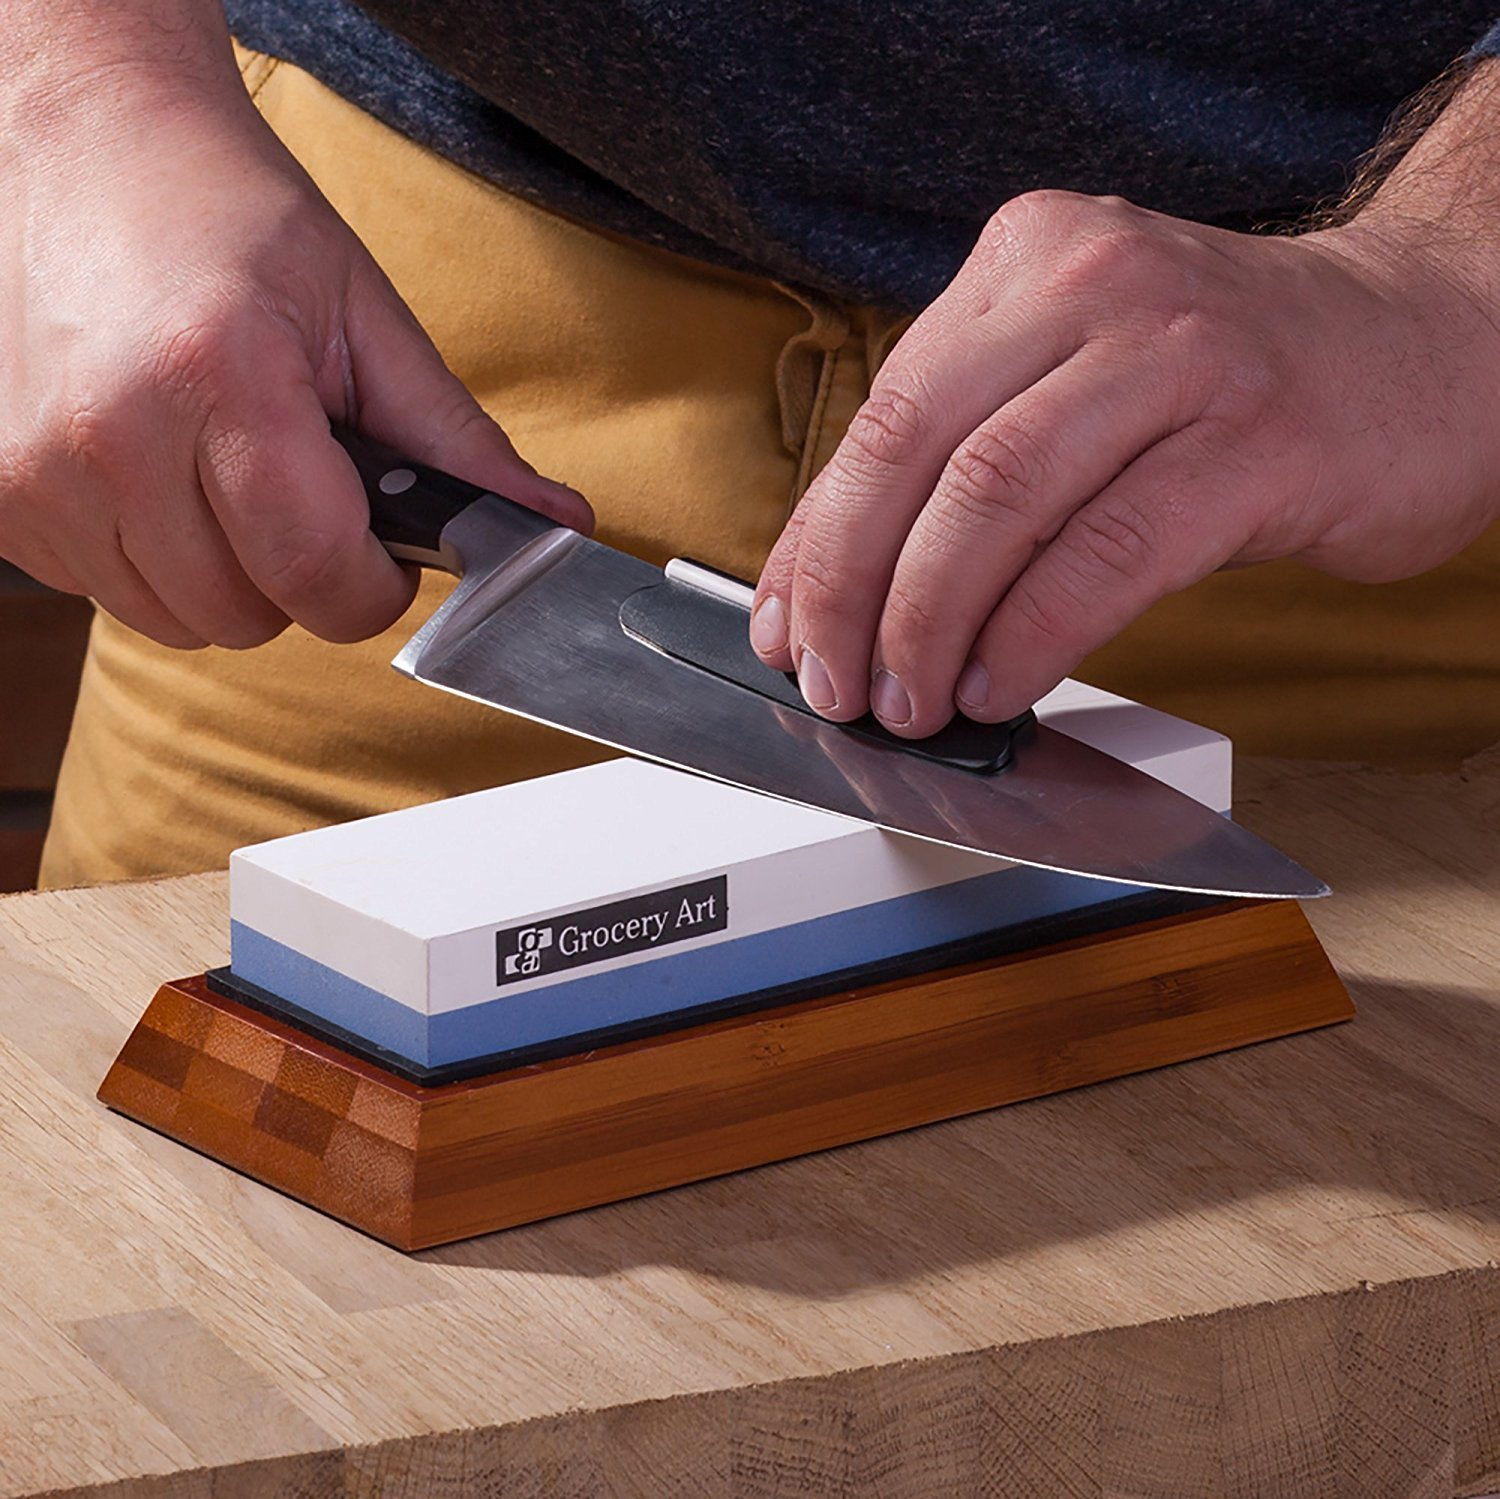 Whetstone Knife Sharpening Stone | Waterstone Knife Sharpener 1000-6000 Grit with Non-Slip Bamboo Base and Angle Guide | Best Wet Stone Kitchen Knives Sharpening Kit by Grocery Art (Image #5)